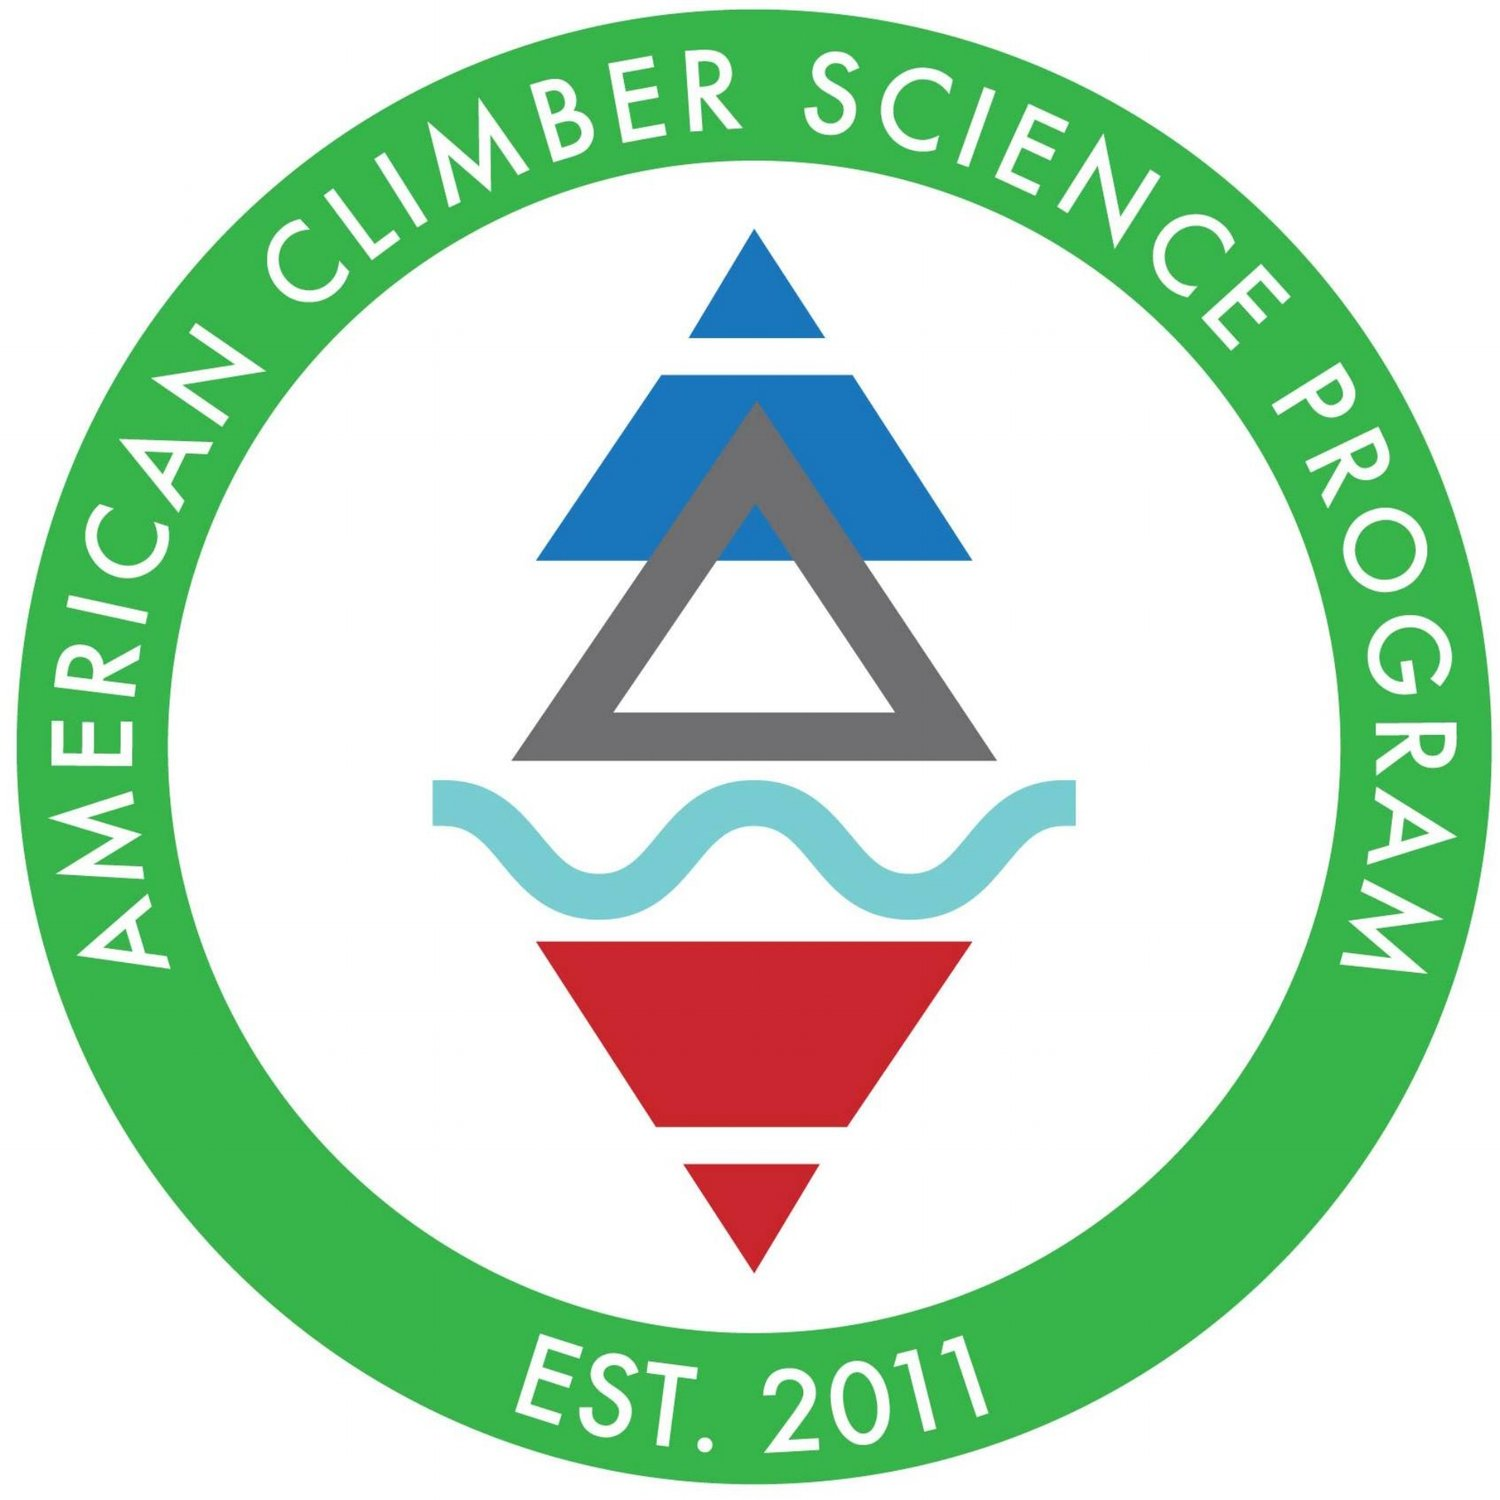 American Climber Science Program